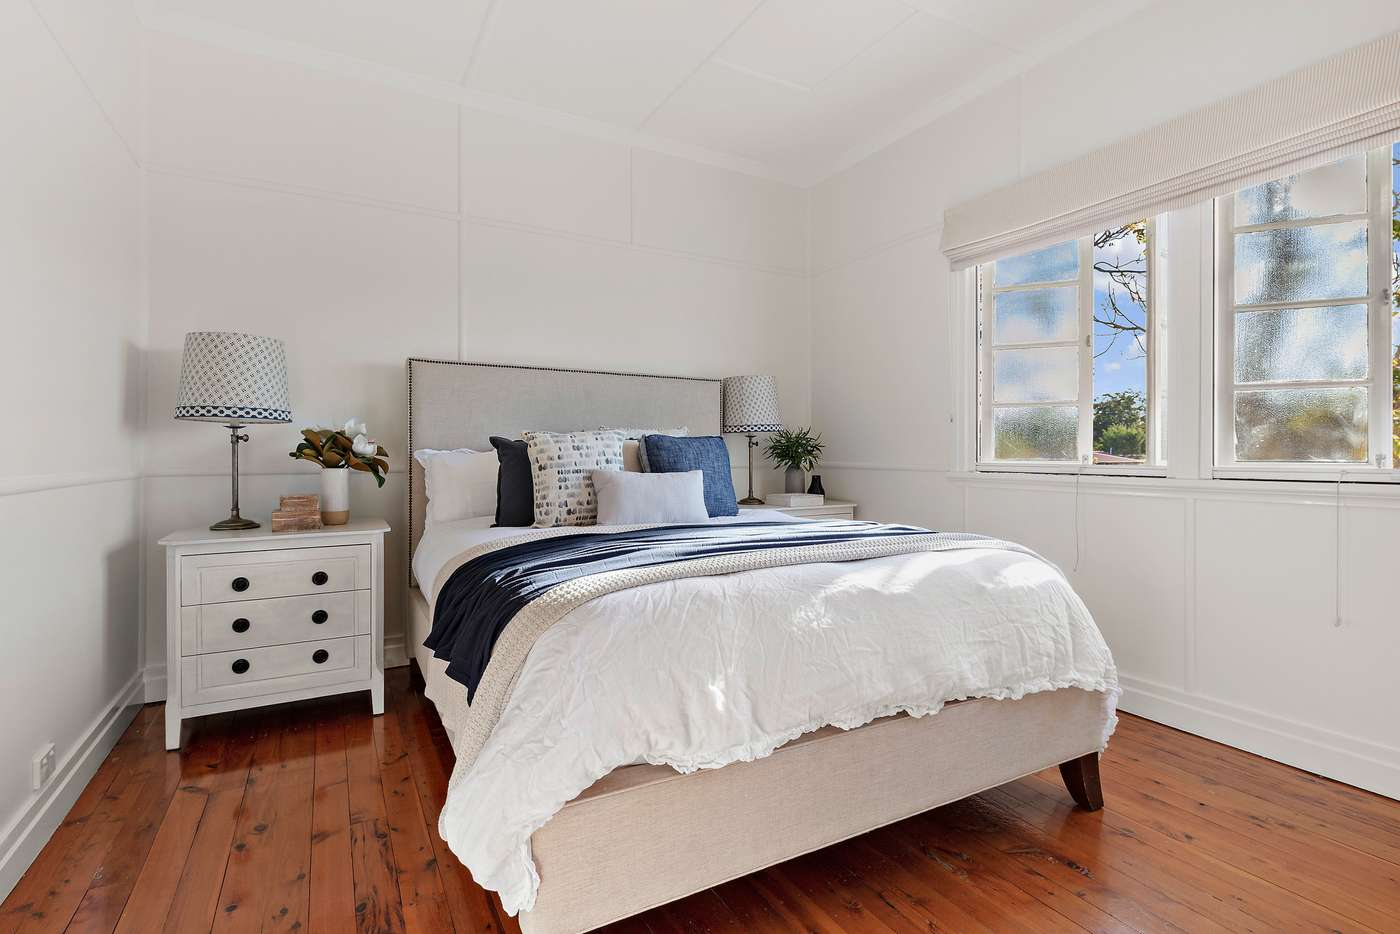 Sixth view of Homely house listing, 87 Waminda Street, Morningside QLD 4170